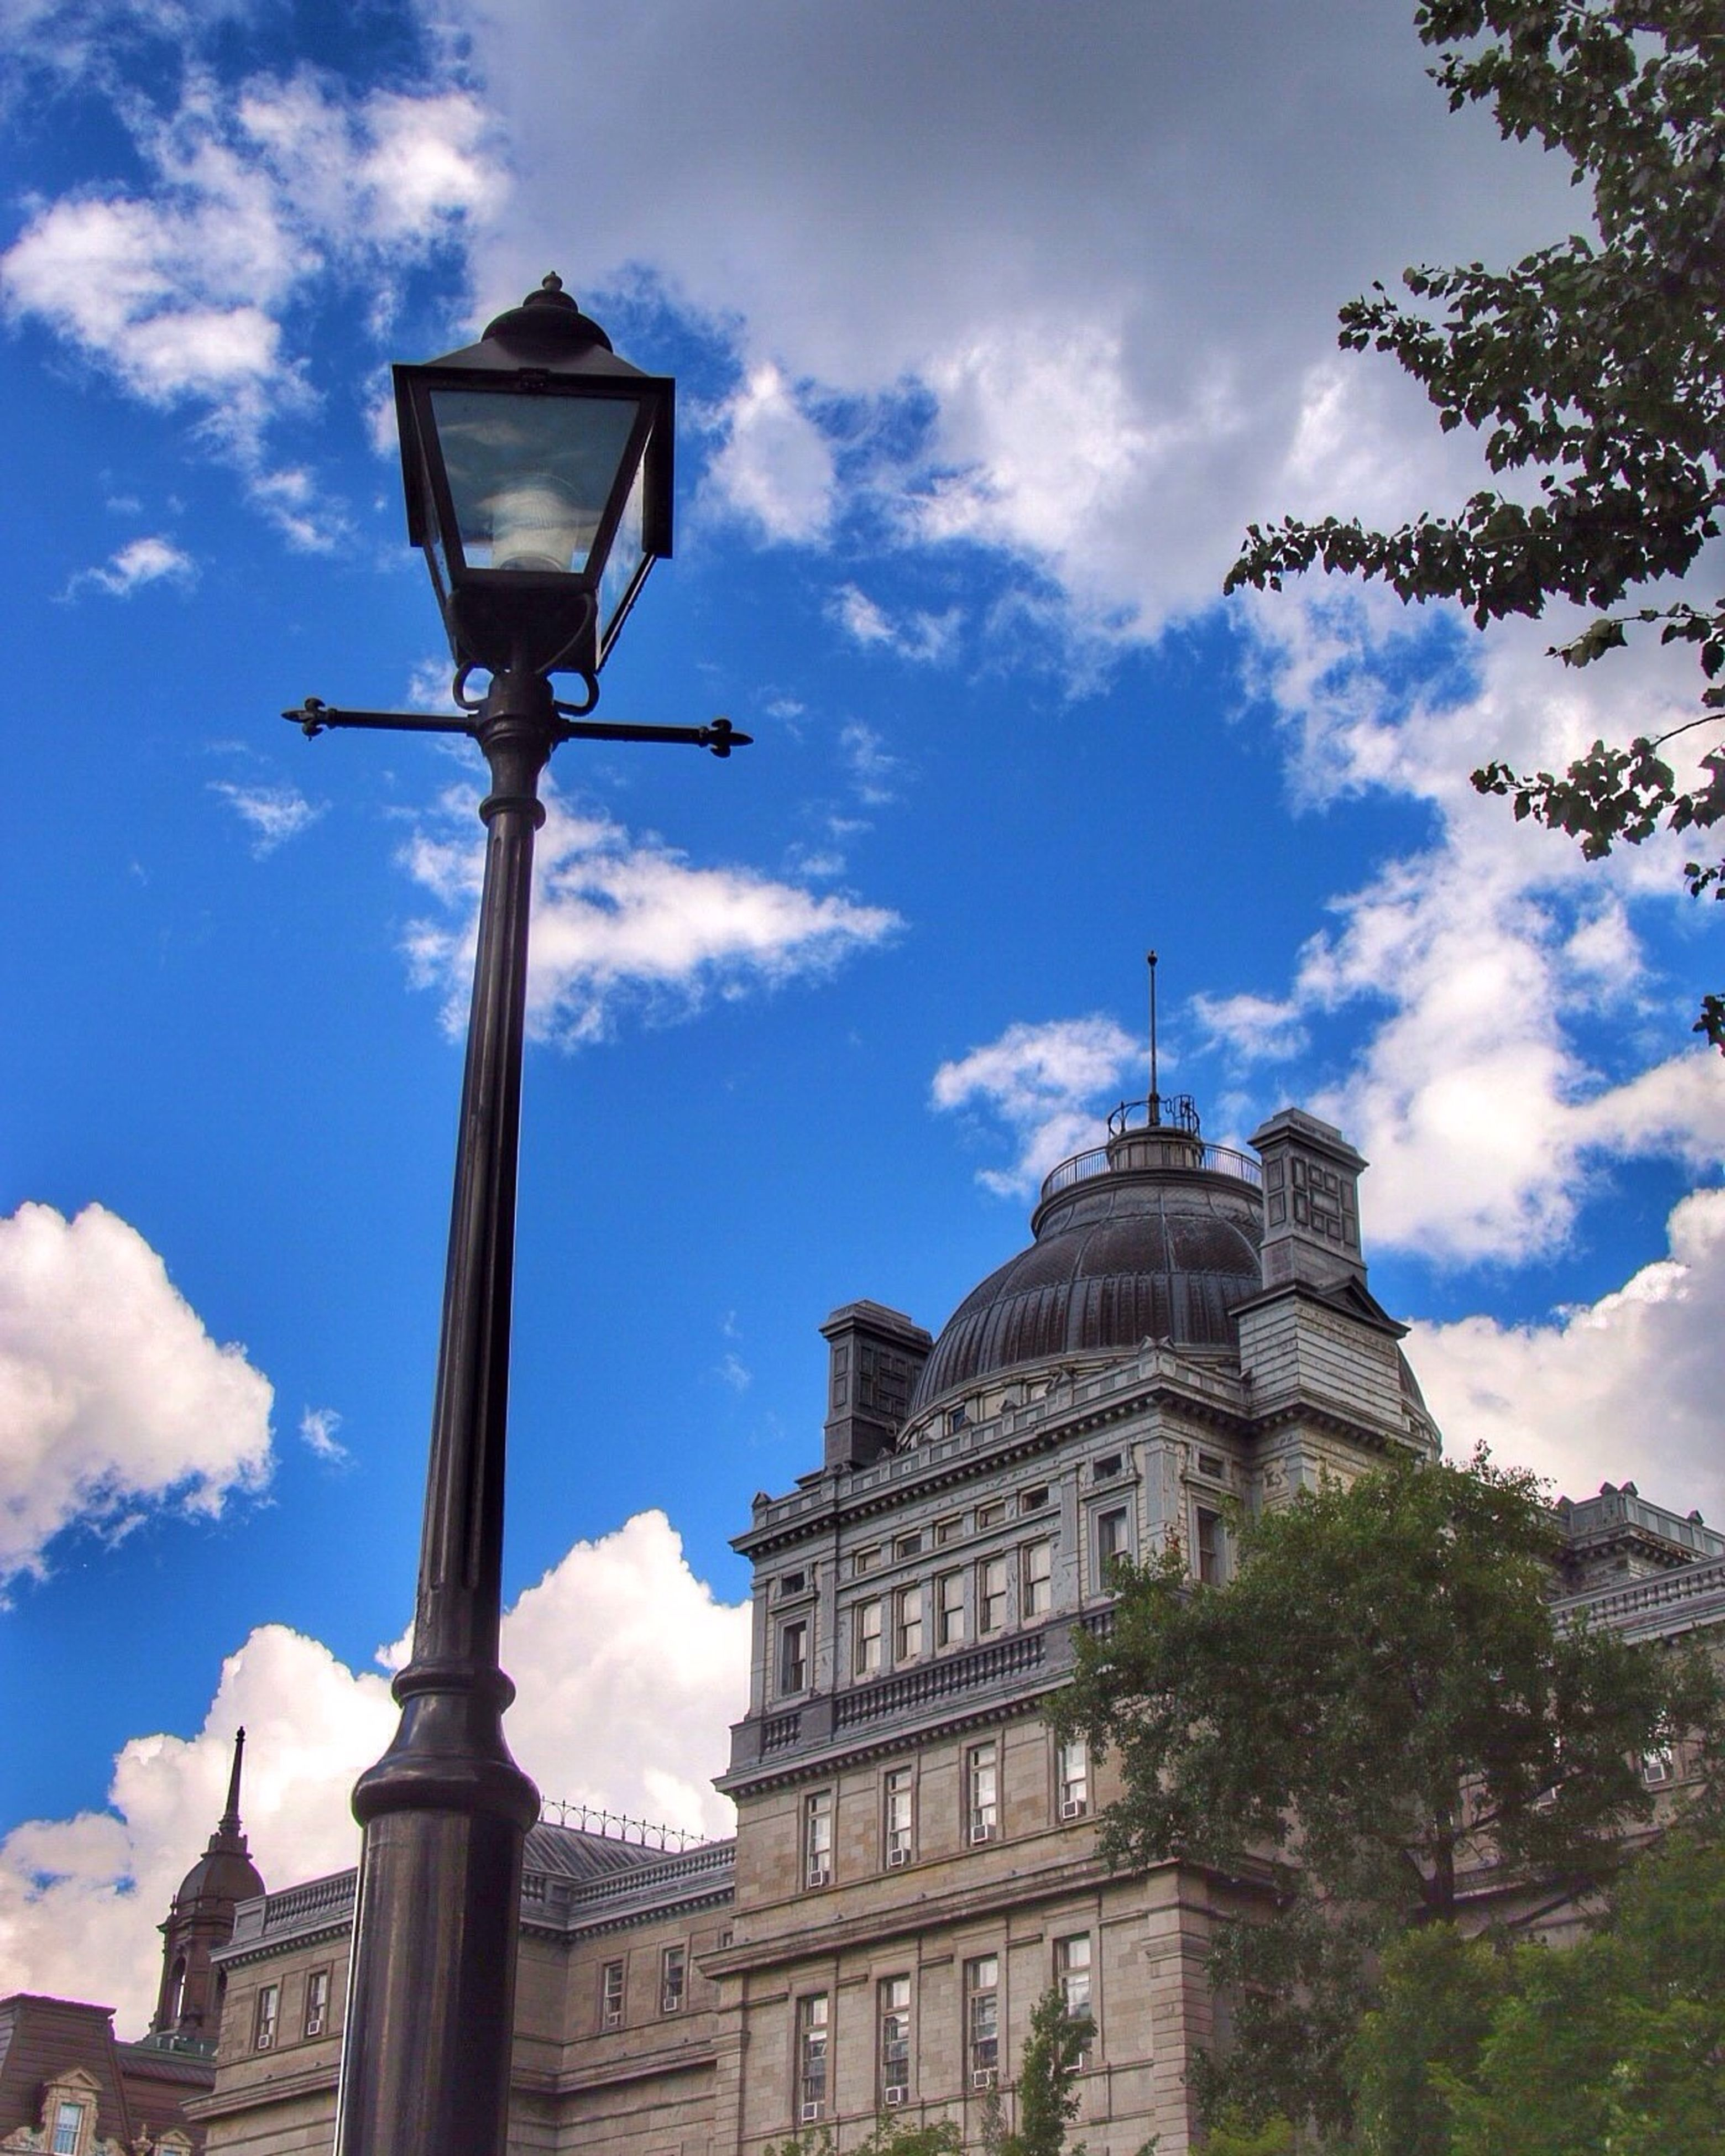 street light, architecture, low angle view, built structure, lighting equipment, building exterior, travel destinations, tourism, sky, famous place, blue, travel, city, lamp post, cloud, outdoors, international landmark, tall - high, history, cloud - sky, day, capital cities, high section, no people, architectural feature, place of worship